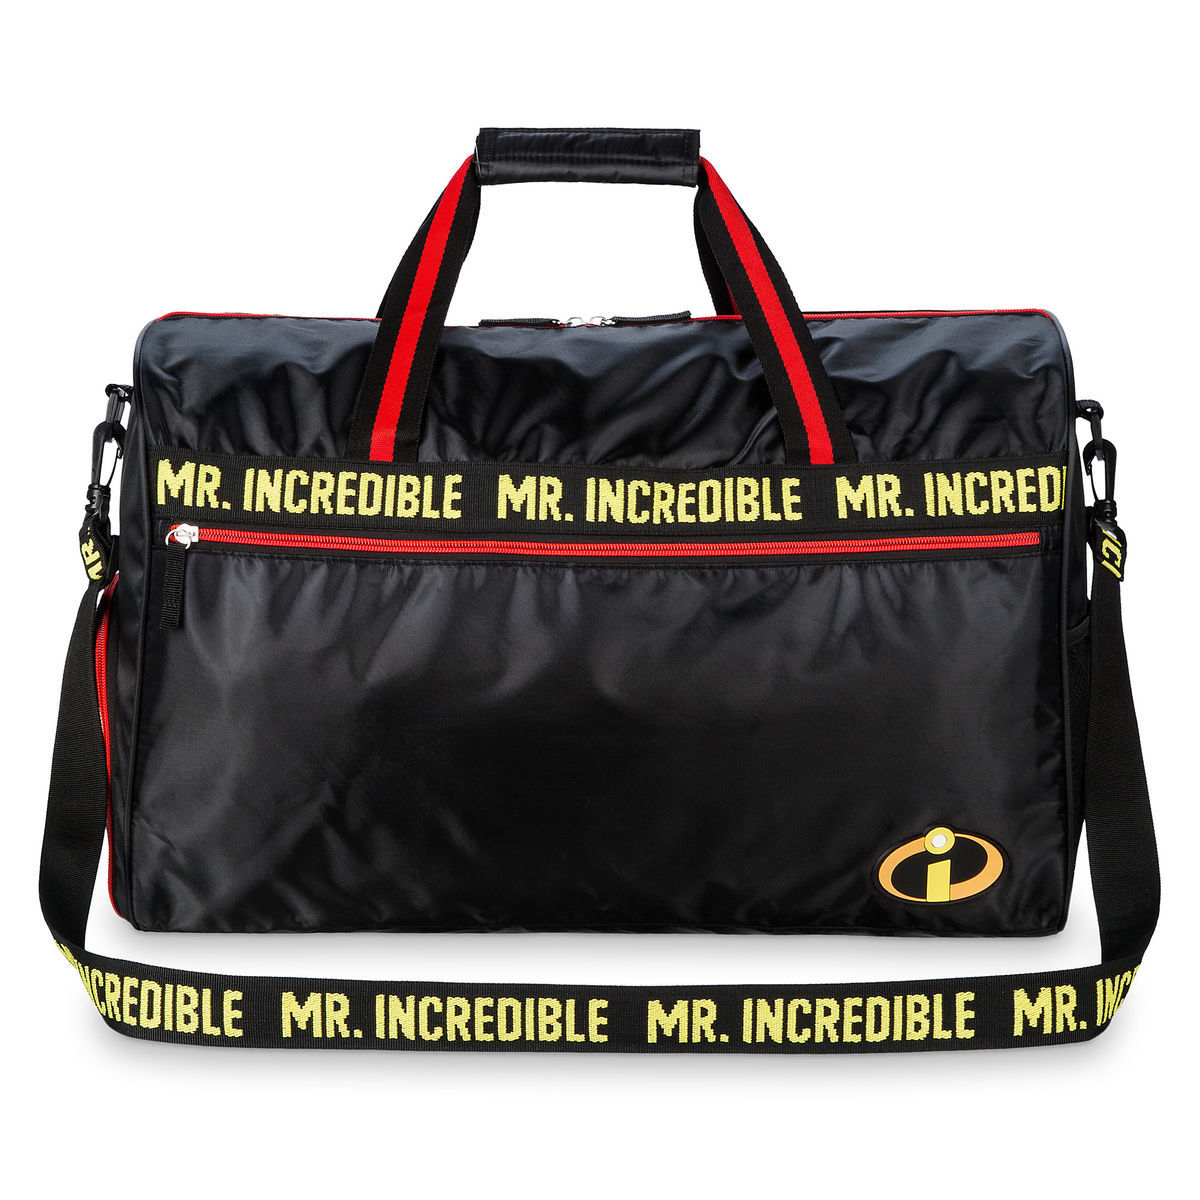 6f4122aecb Product Image of Mr. Incredible Duffel Bag   1